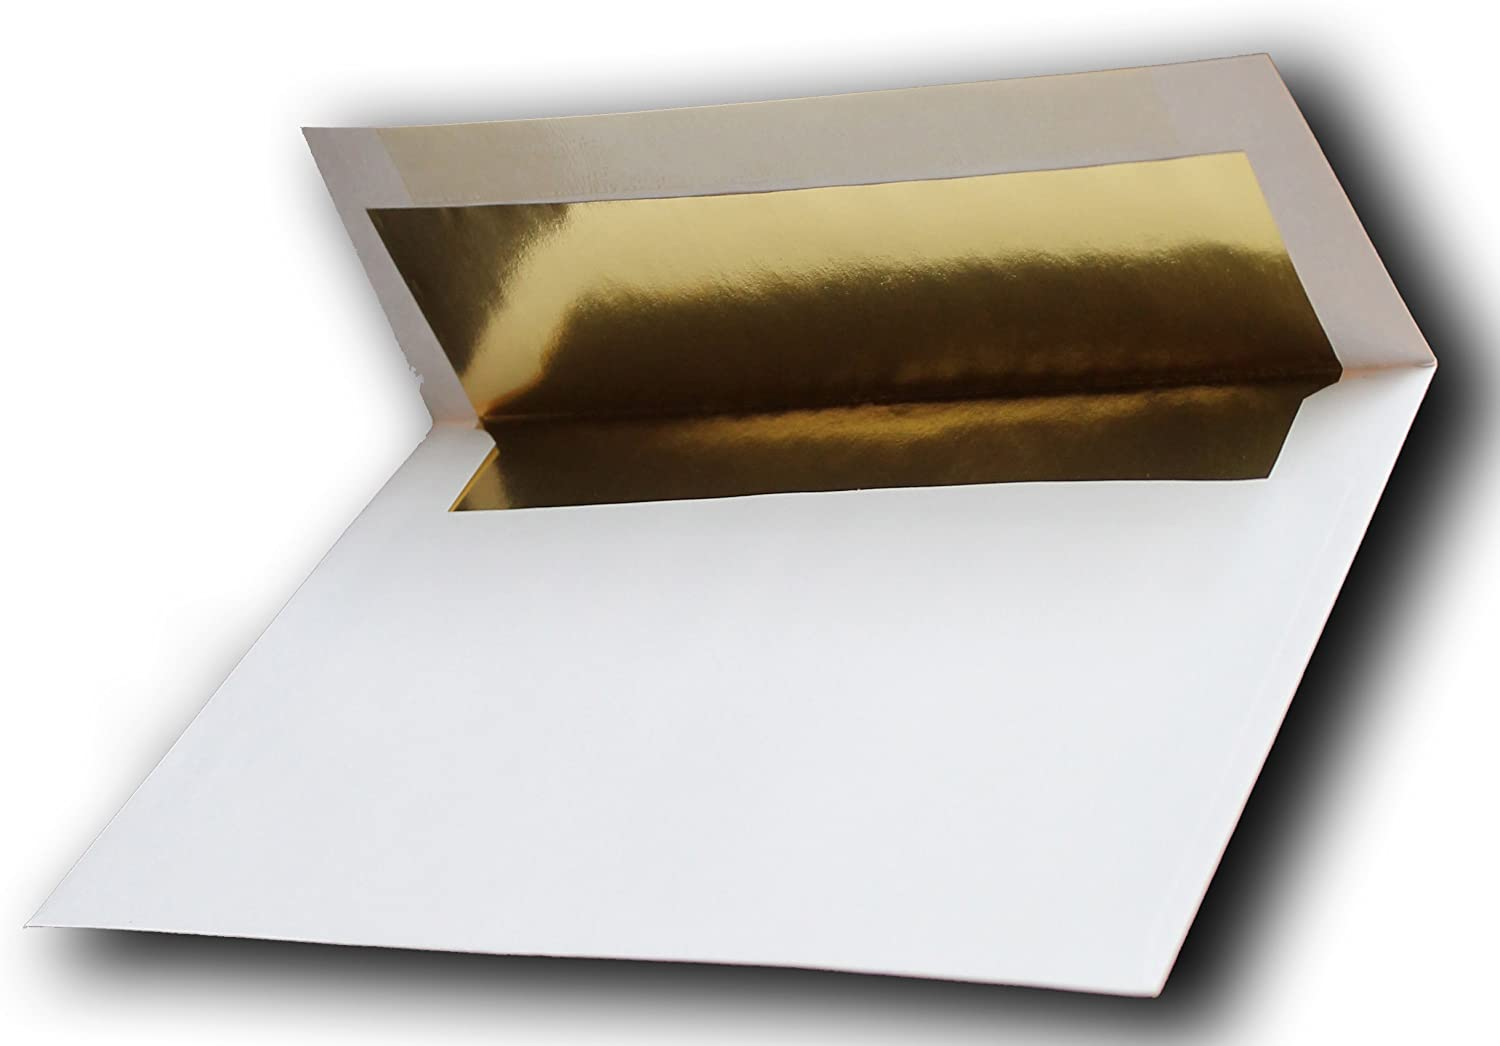 Gold Foil-Lined 70lb. White A7 Envelopes 50 Boxed for 5 X 7 Wedding Invitations from The Envelope Gallery